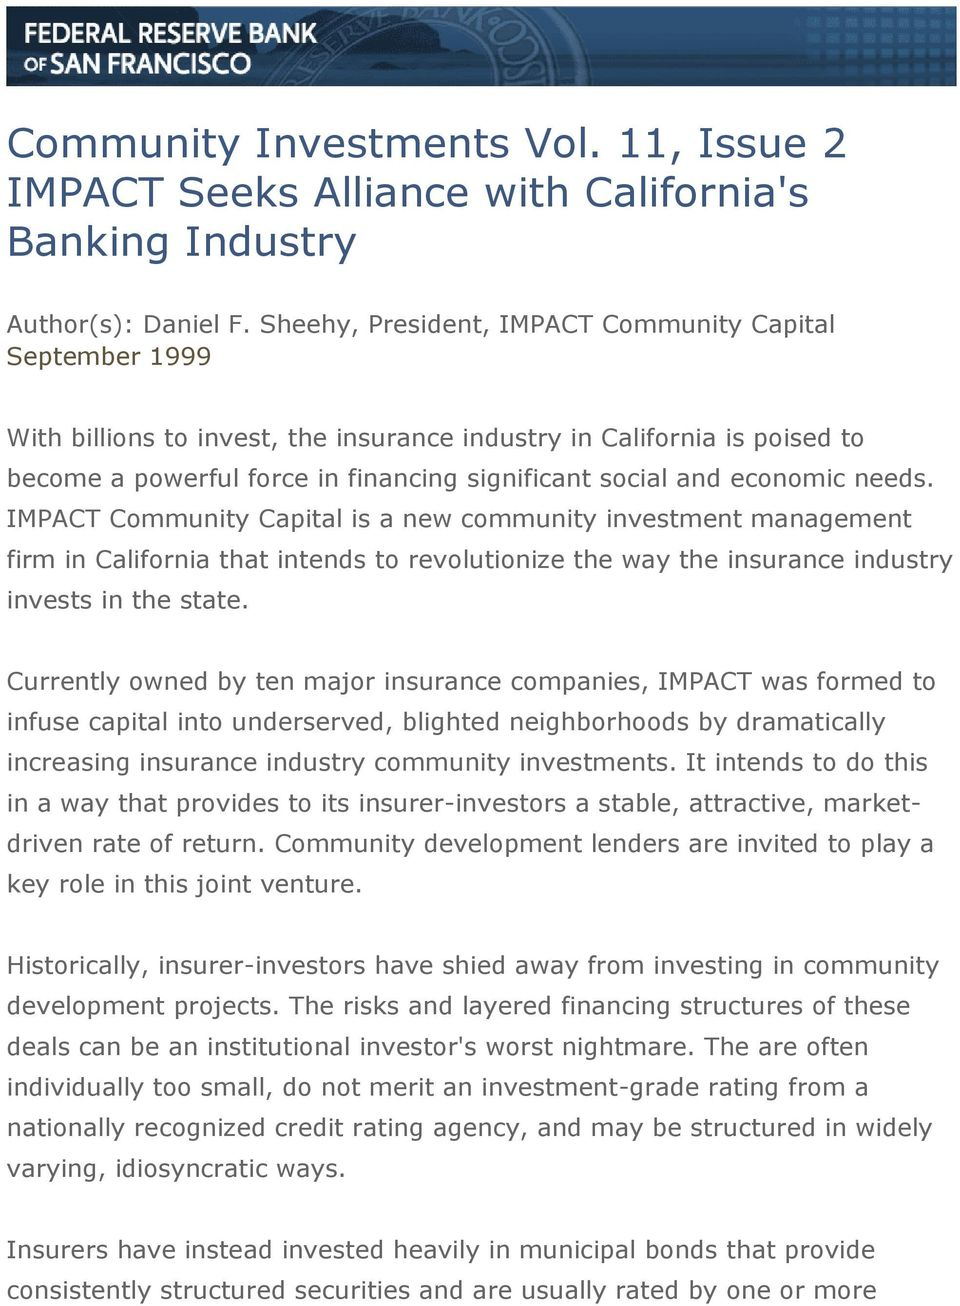 economic needs. IMPACT Community Capital is a new community investment management firm in California that intends to revolutionize the way the insurance industry invests in the state.